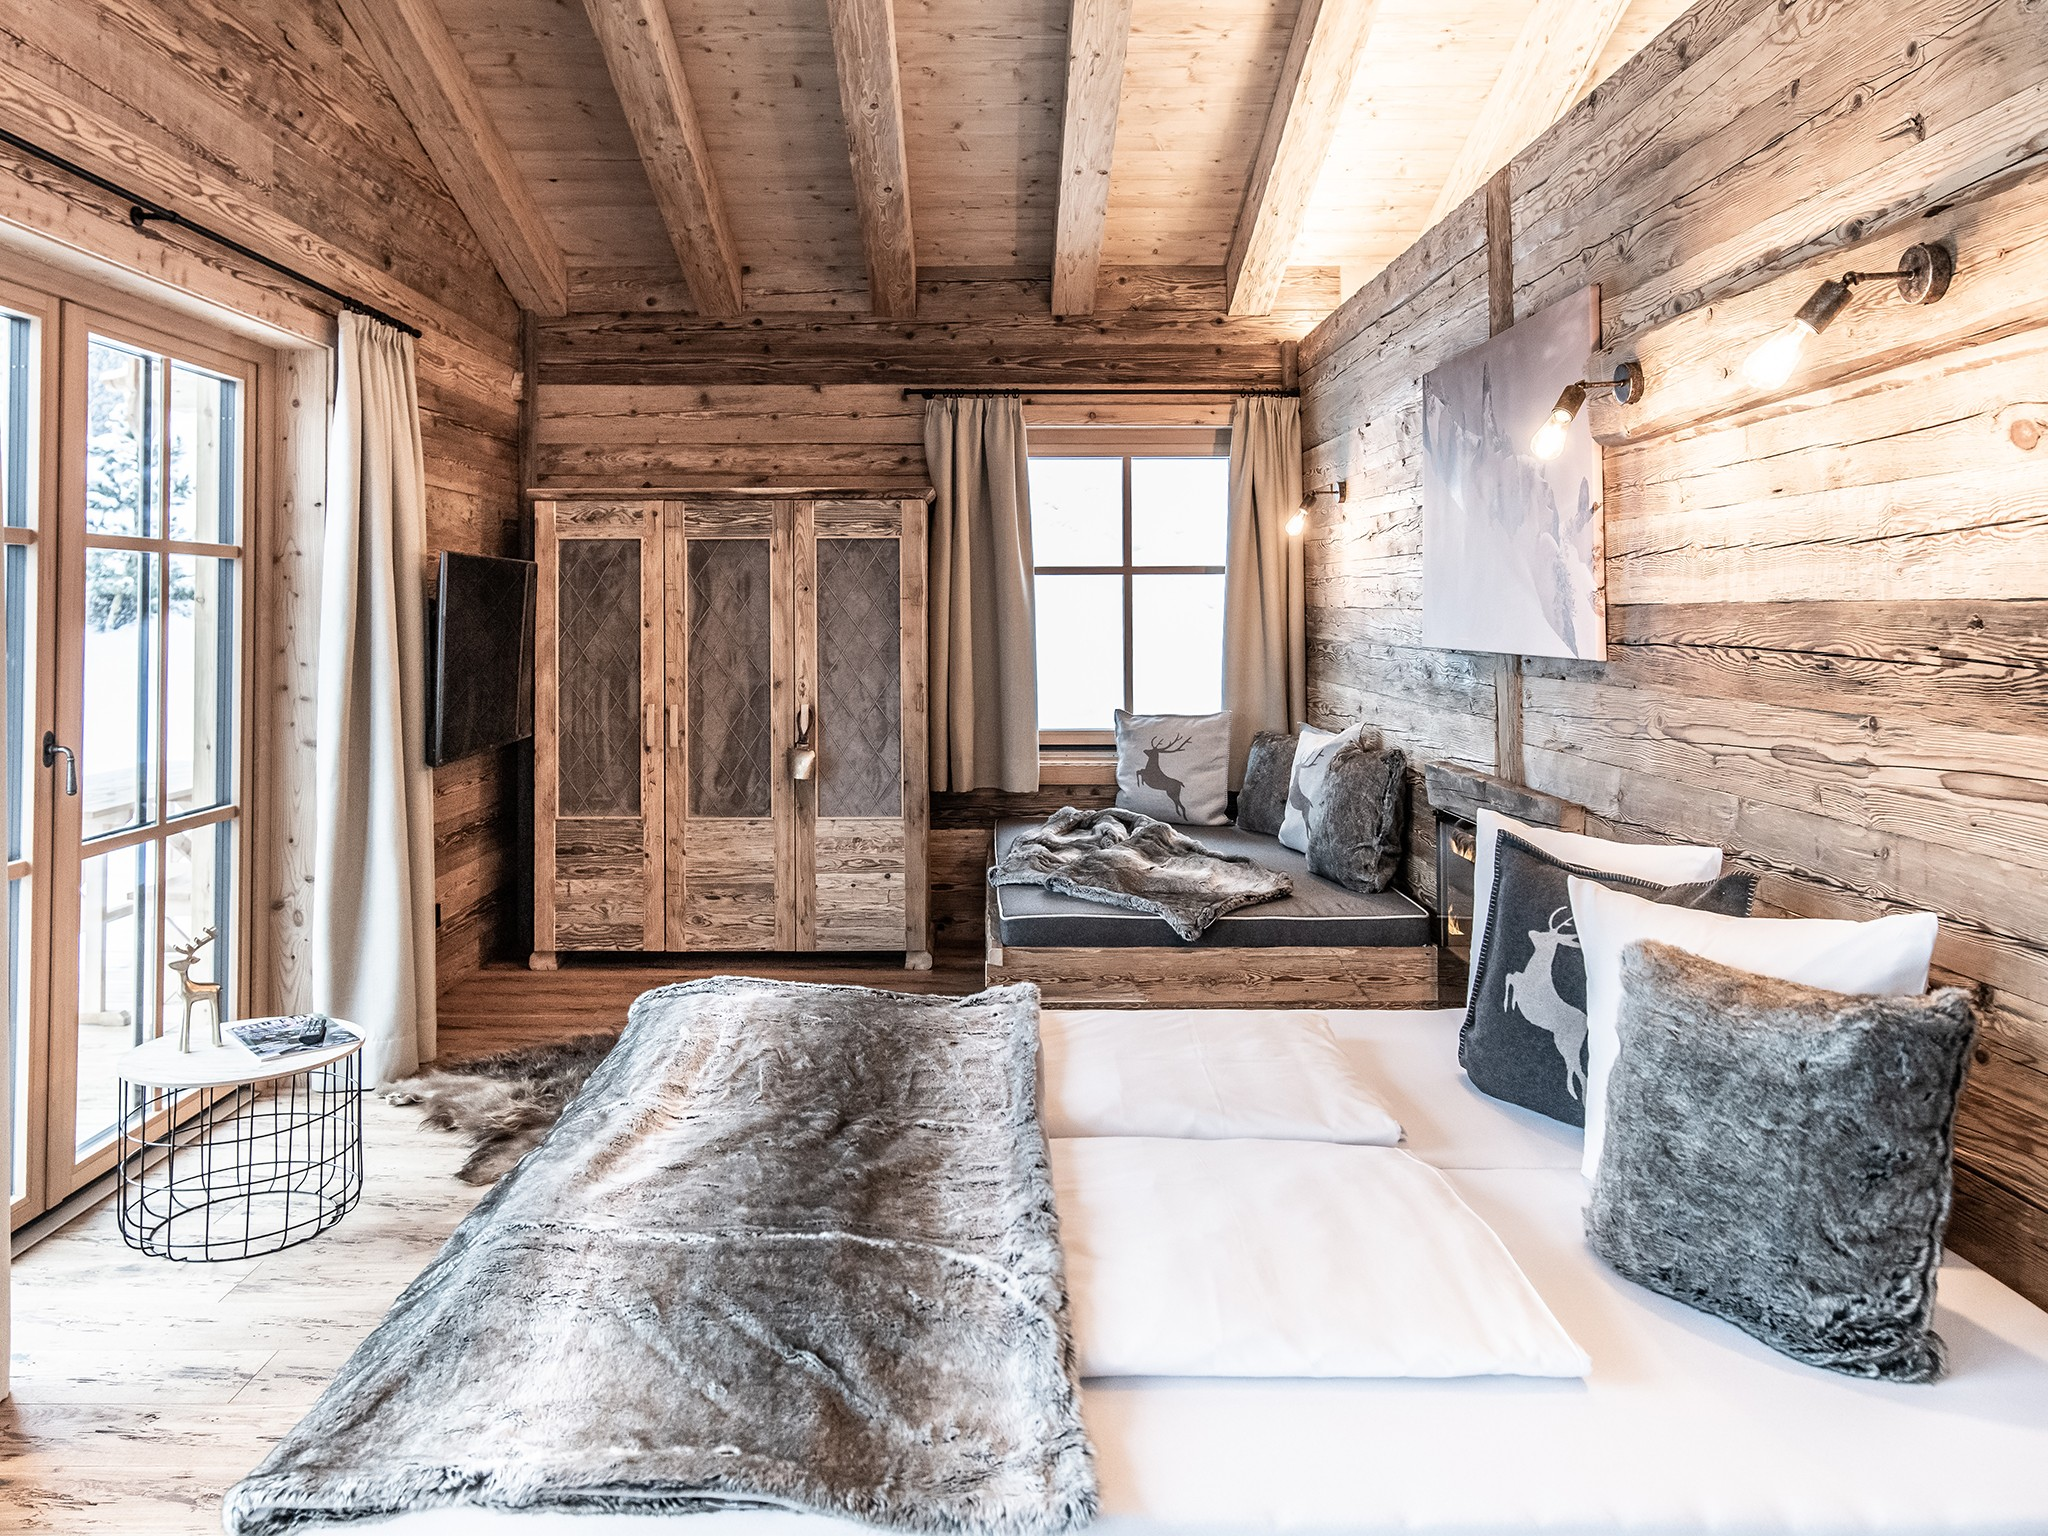 Lech-Chalet Stein - sleeping area